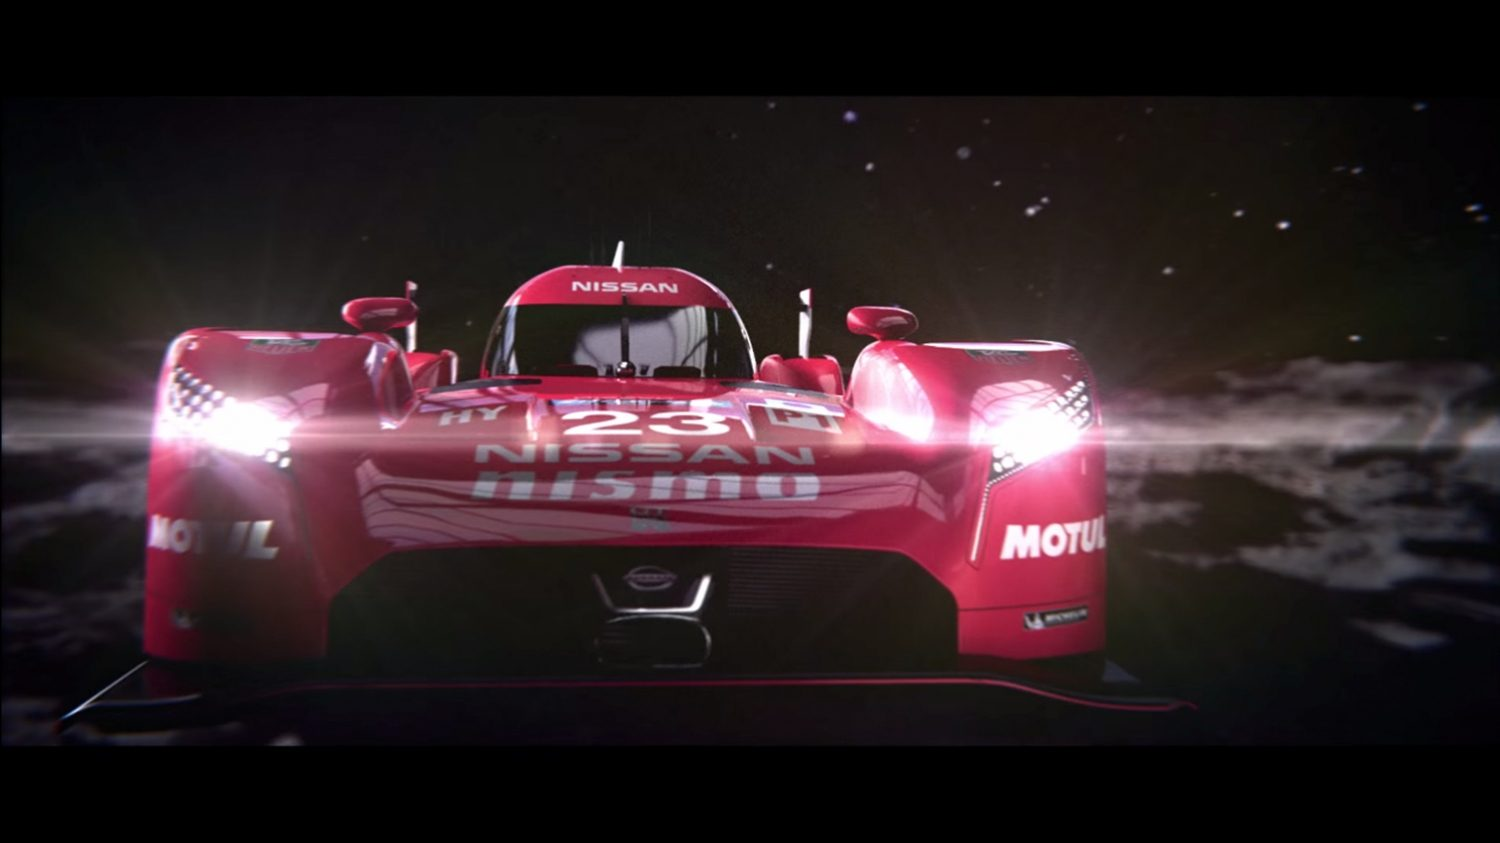 GT-R LM NISMO: Nissan NISMO entry in the 24 hours of Le Mans